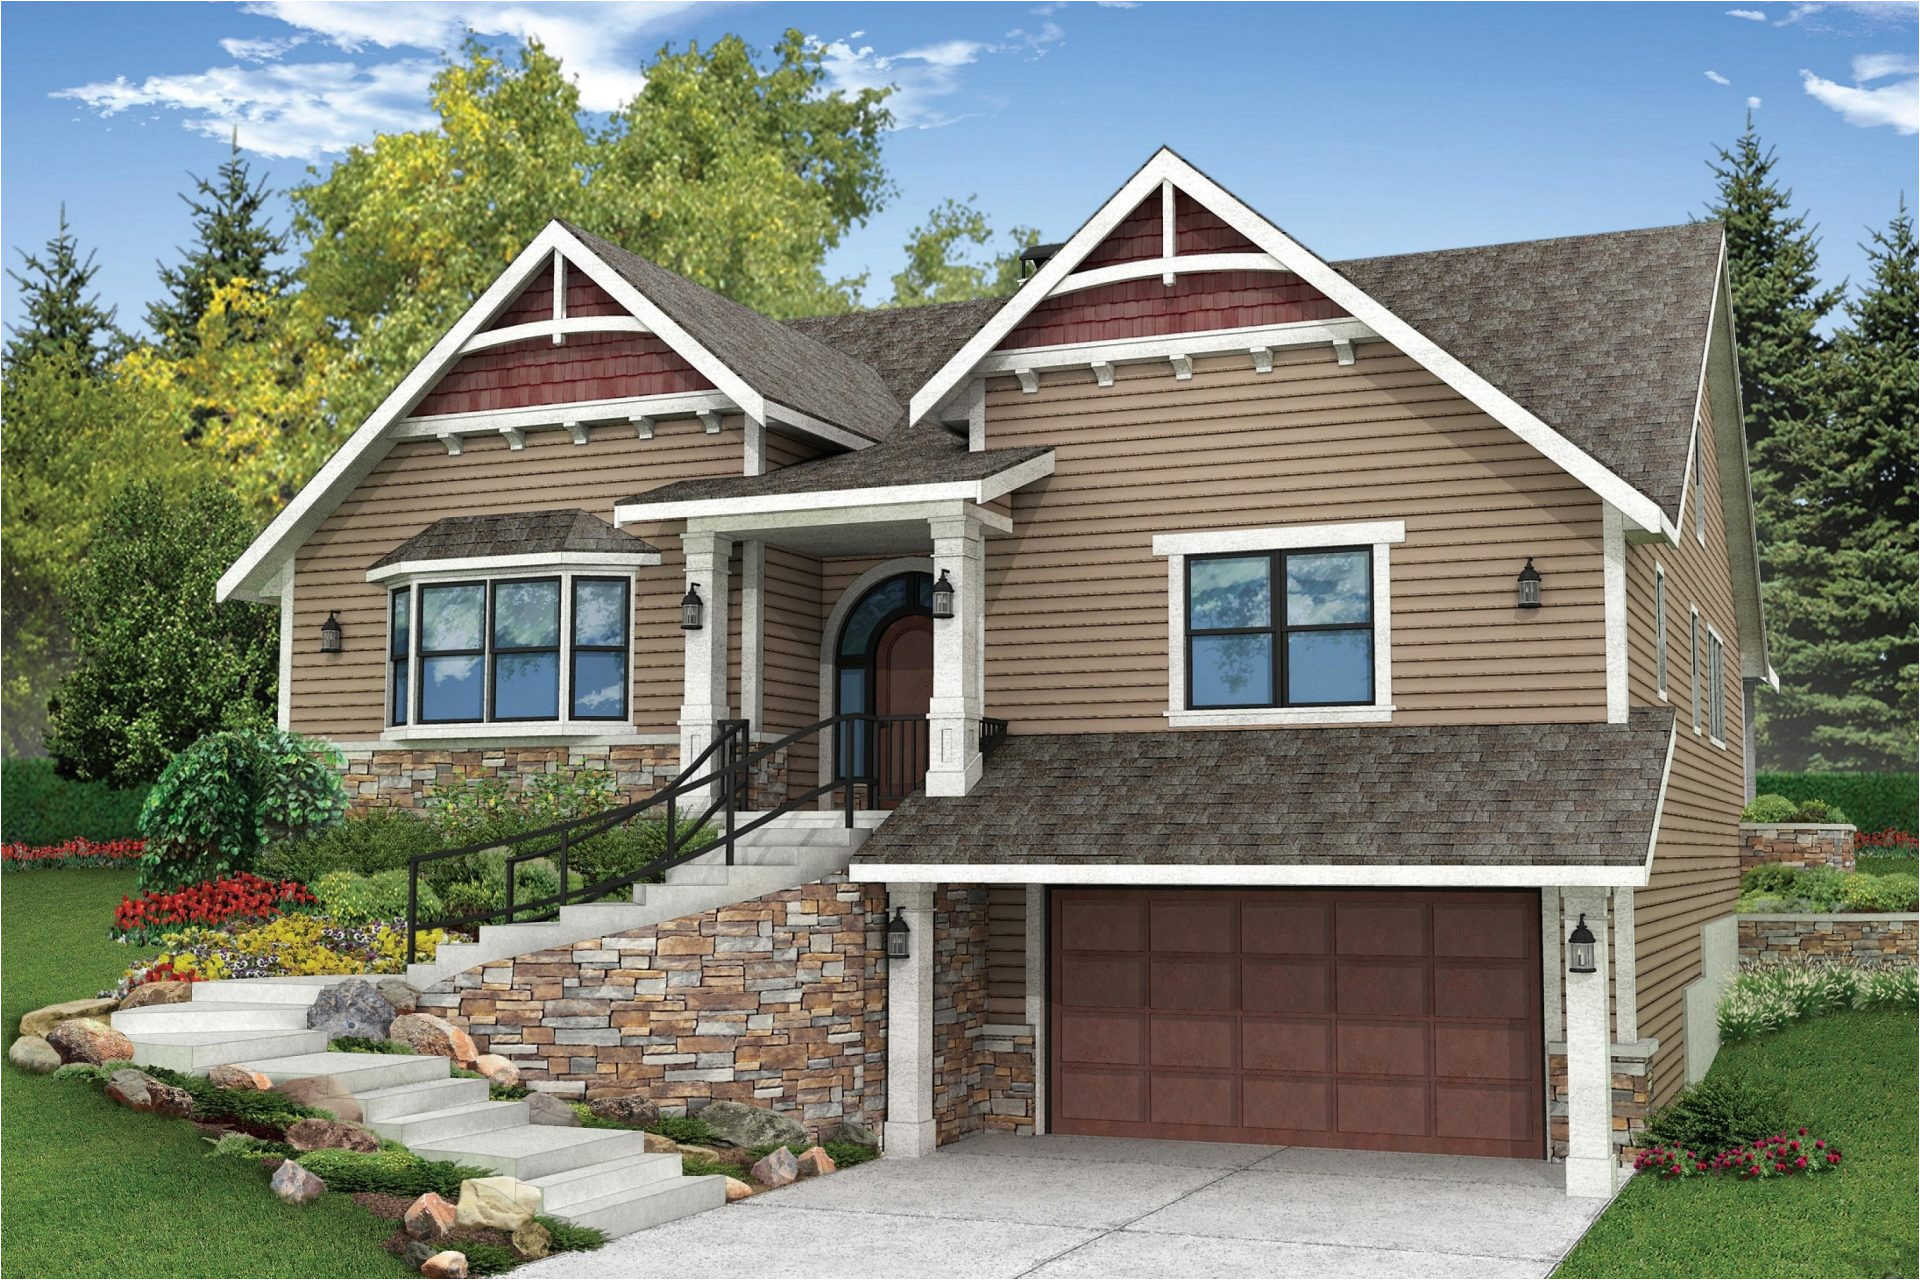 sloped lot house plans walkout basement best of for hillside lots building considerations 20 side sloping